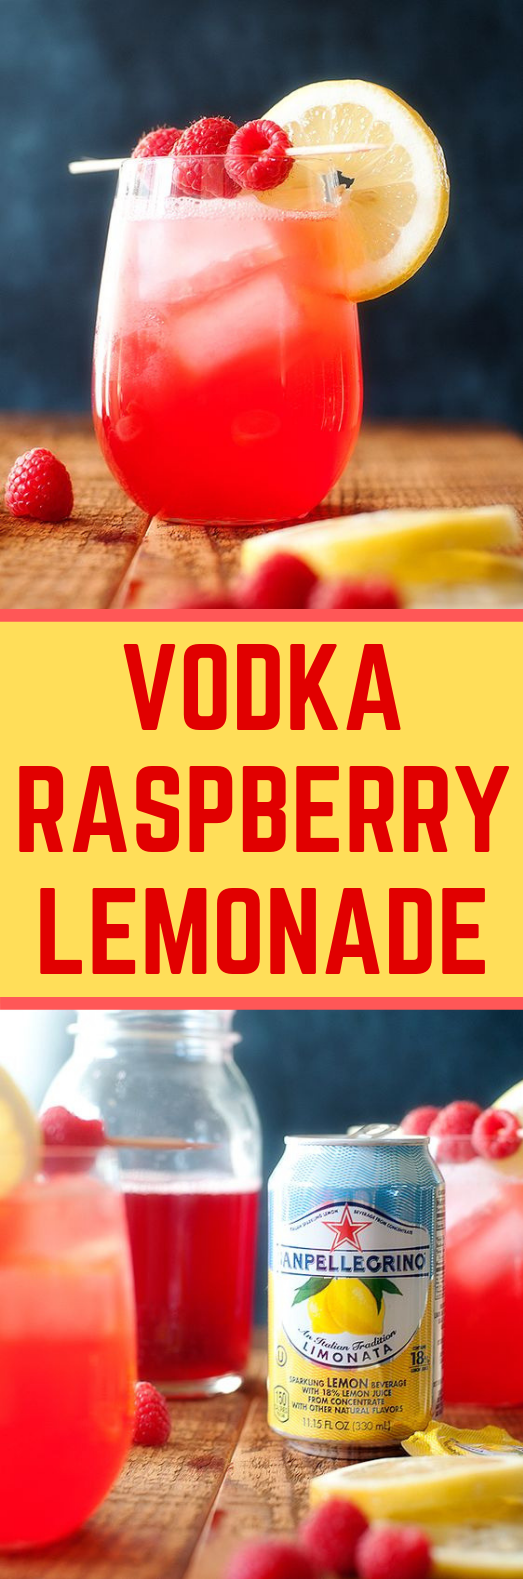 VODKA RASPBERRY LEMONADE #Cocktail #DrinkUp